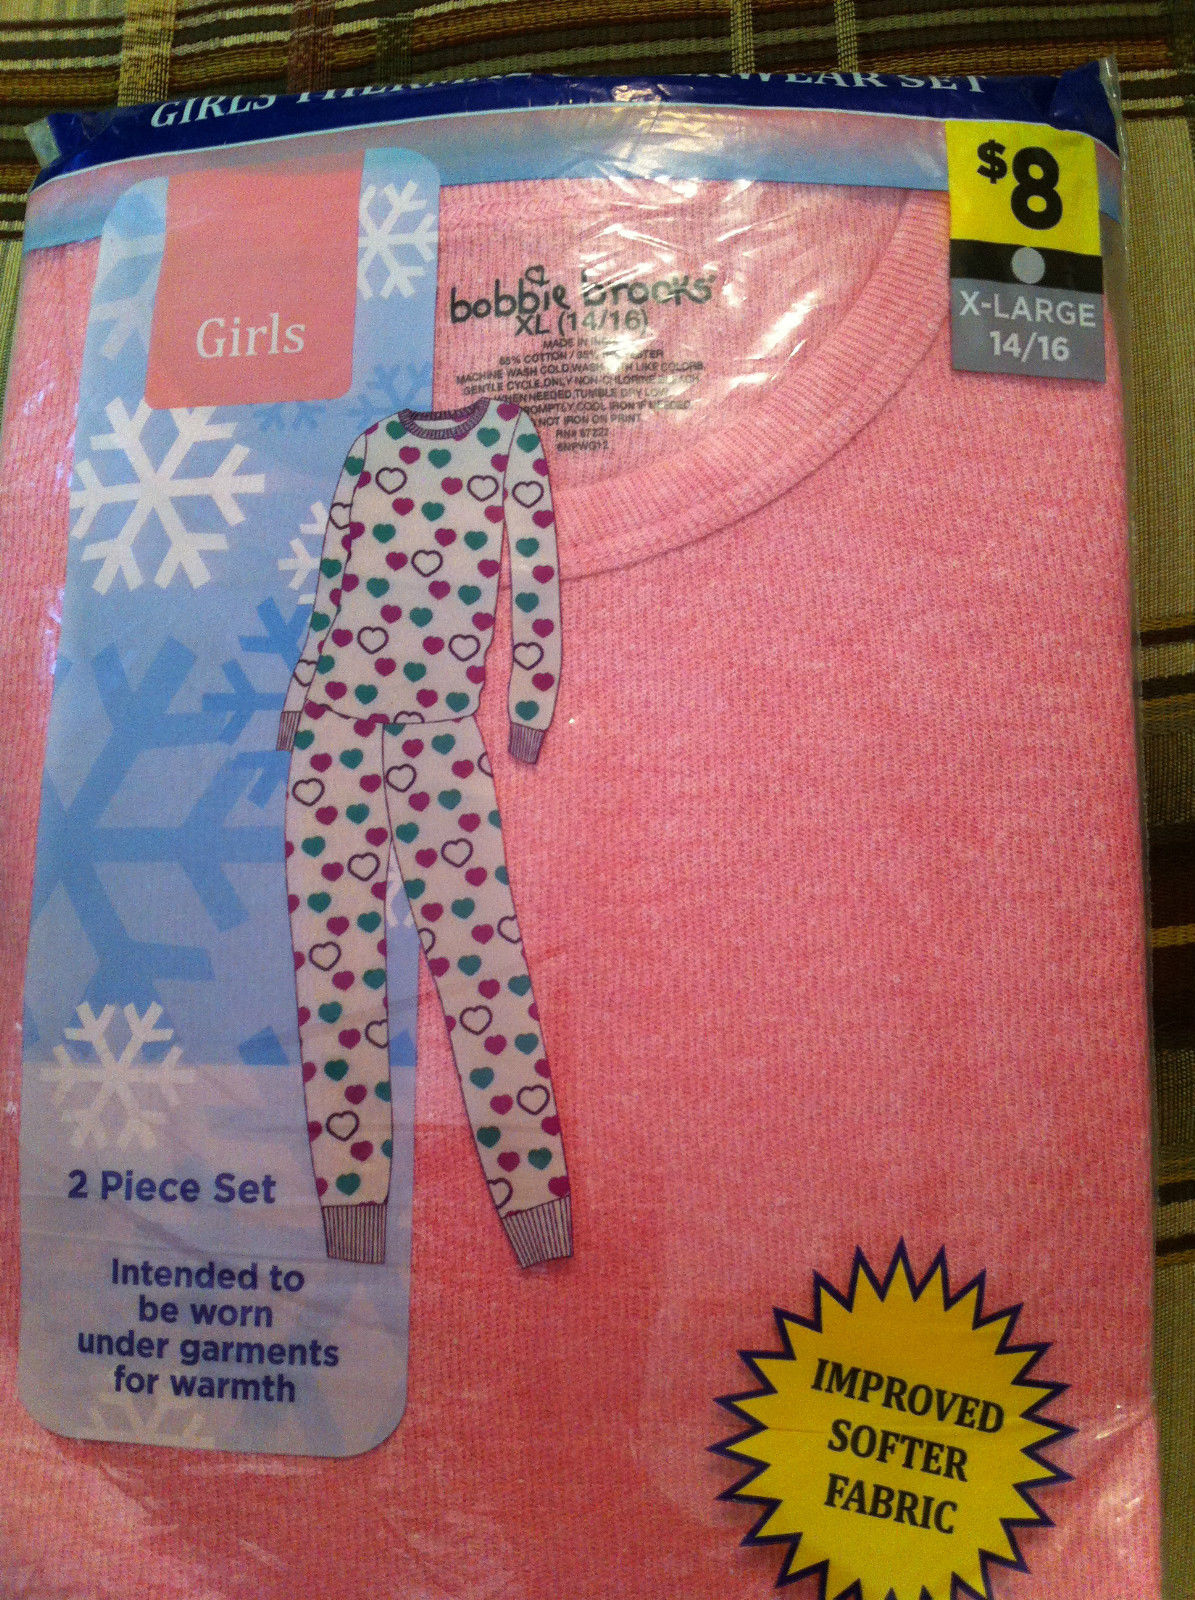 Girls Thermal Underwear Set - Pink X-LARGE 14/16 (2 Piece Set)